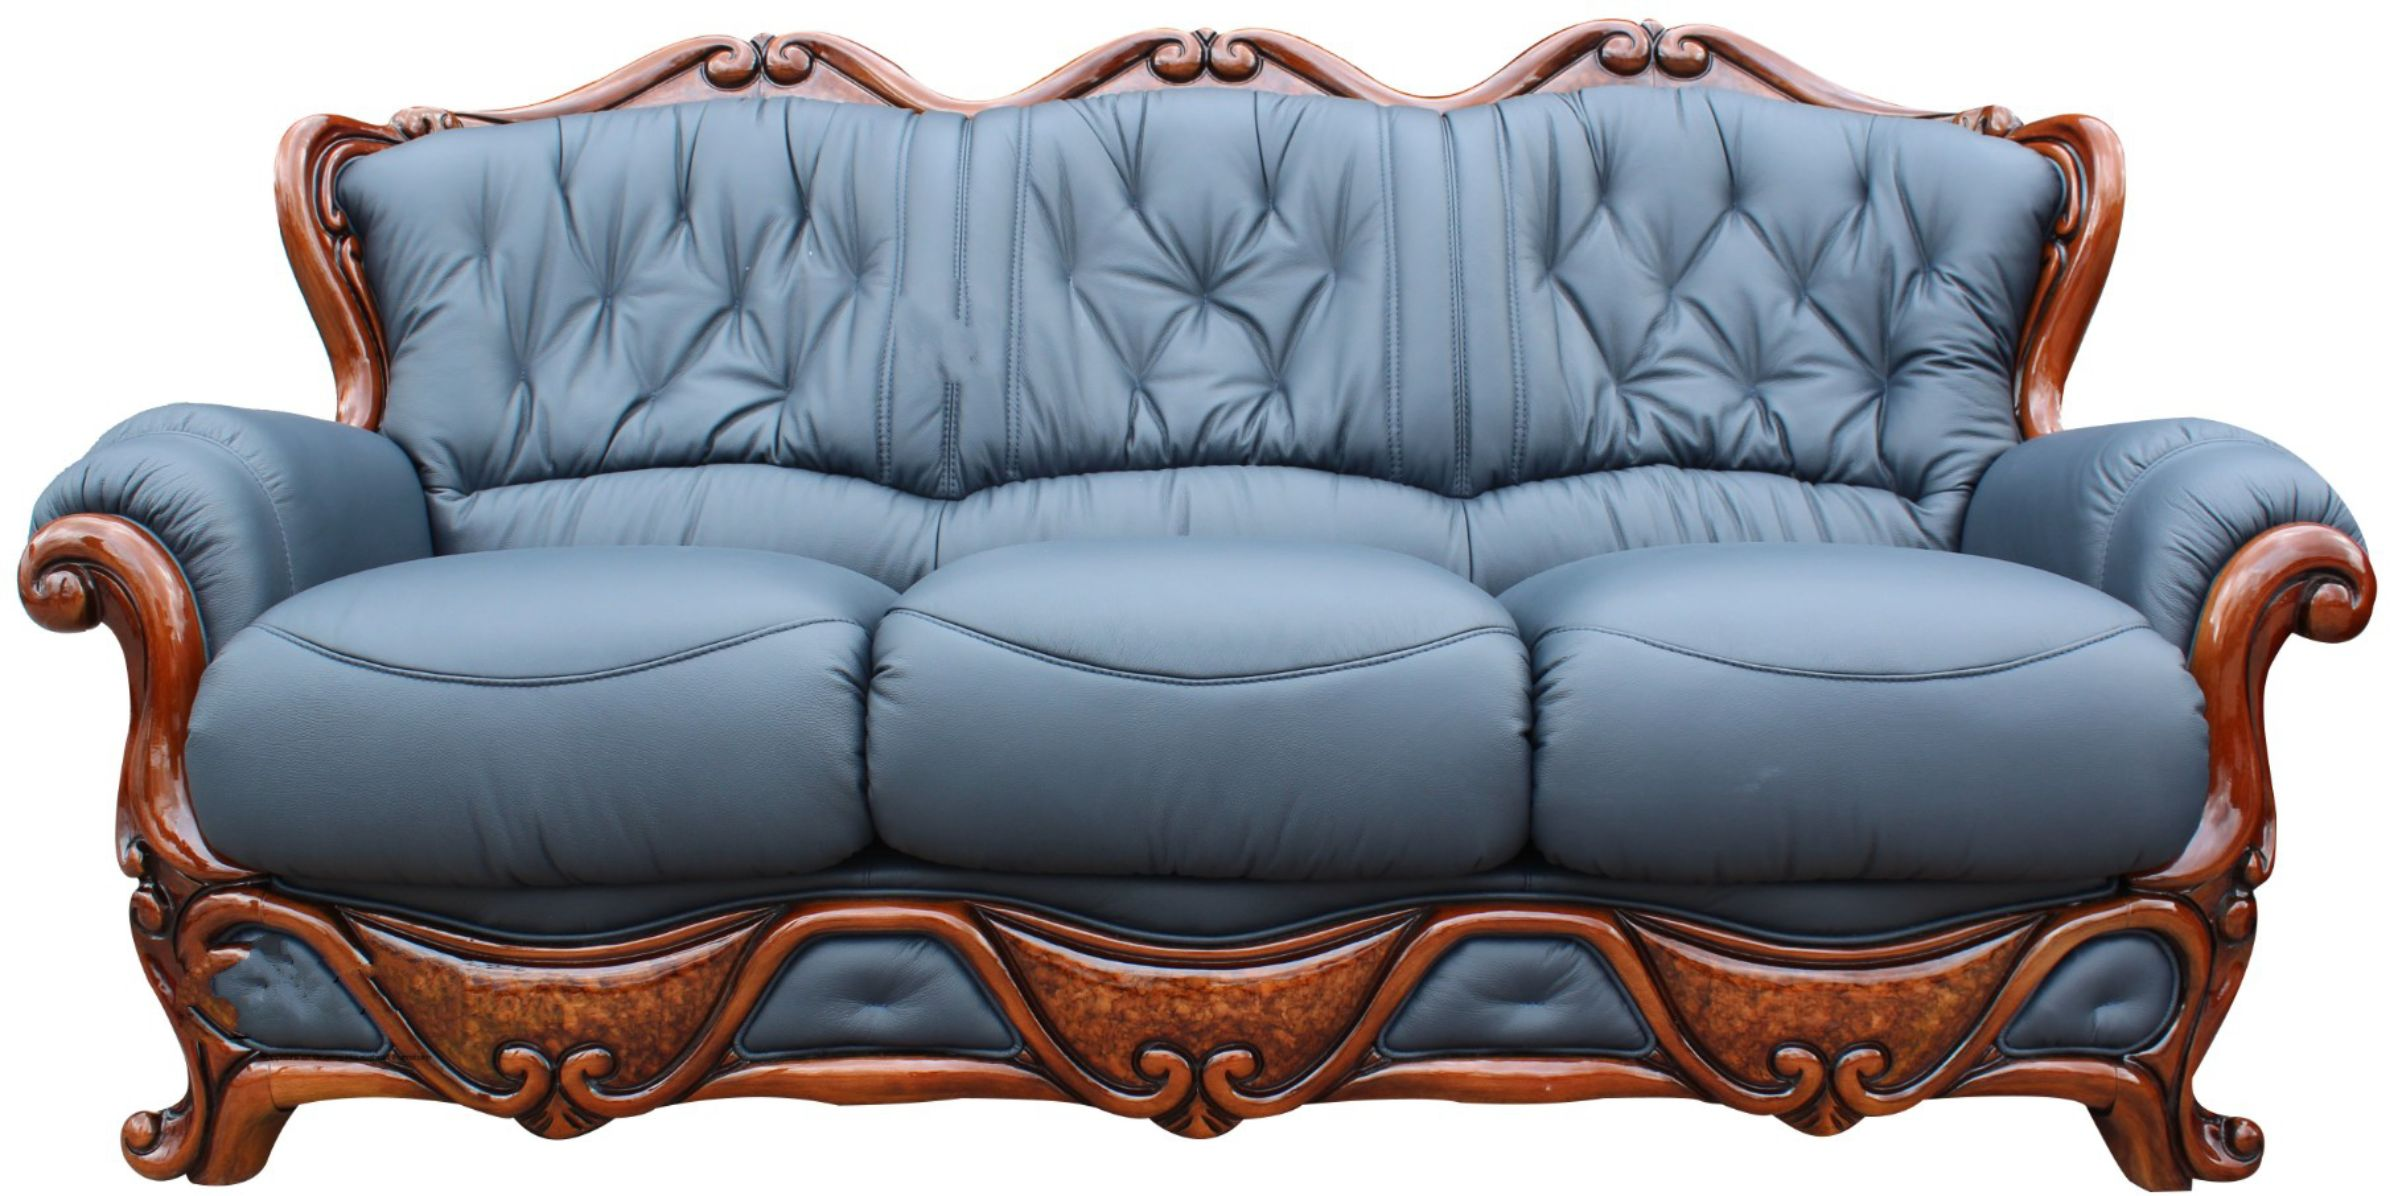 Dante 3 Seater Italian Leather Sofa Settee Offer Blue